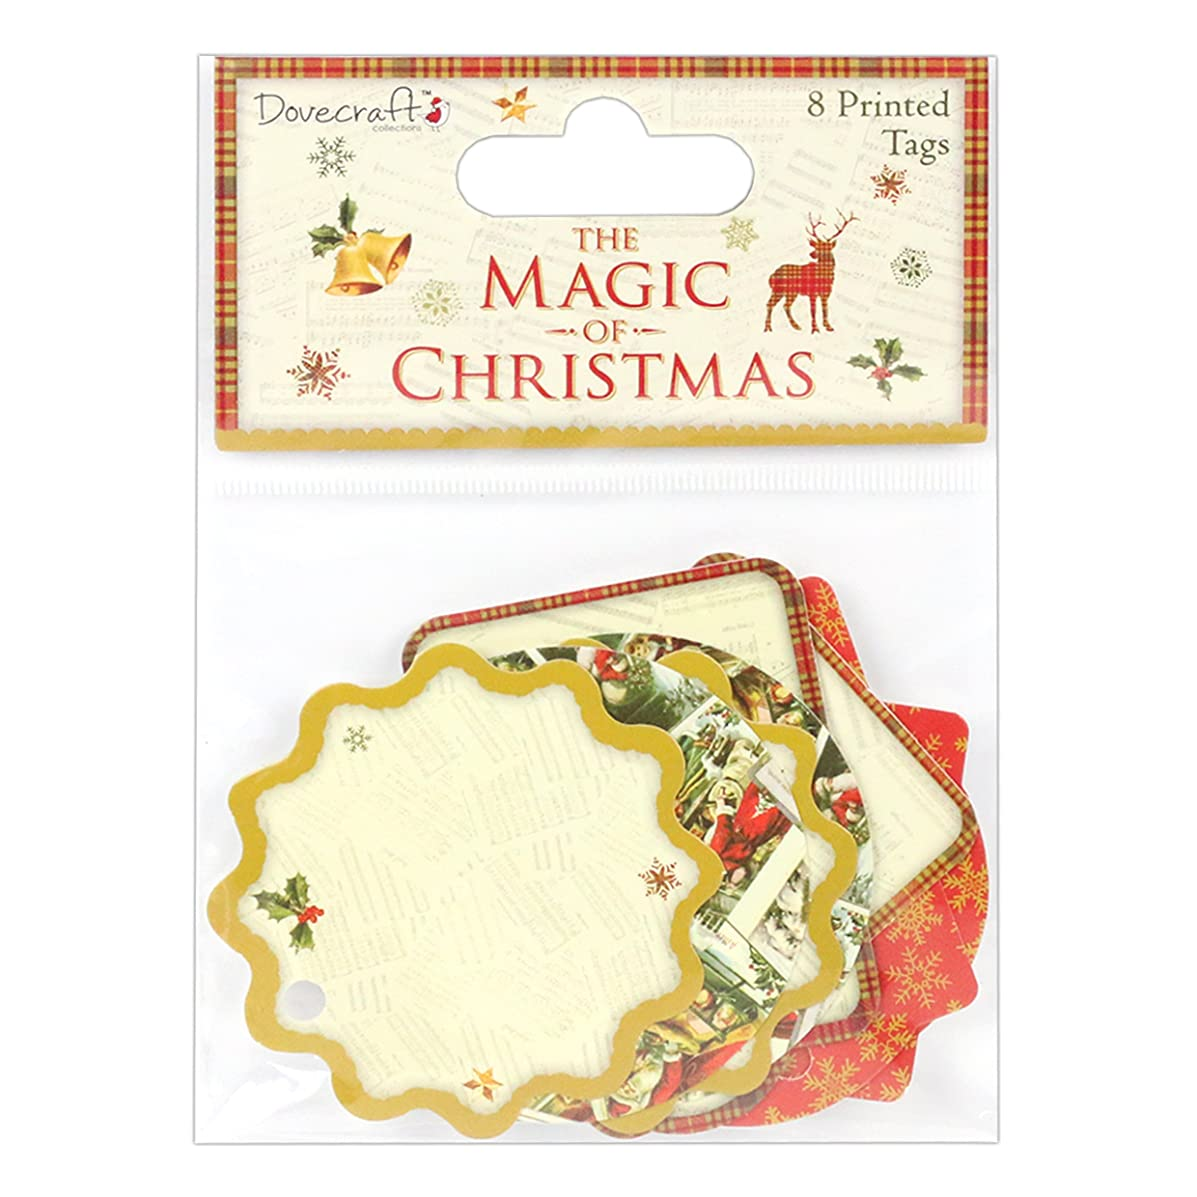 Dovecraft Christmas Collection - The Magic of Christmas Printed Tags